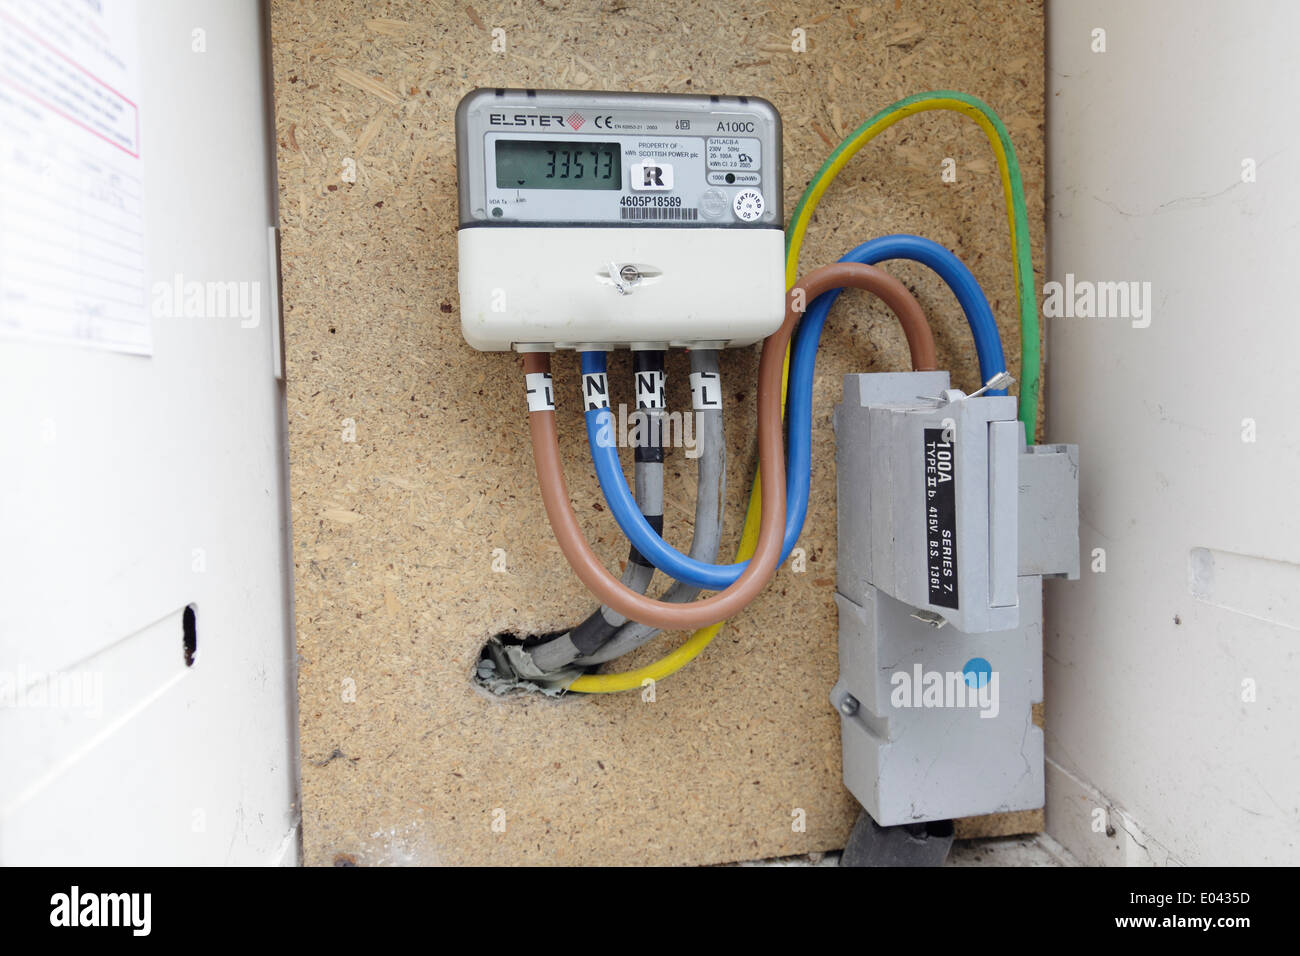 hight resolution of electric meter box stock photos electric meter box stock images house power meter box wiring